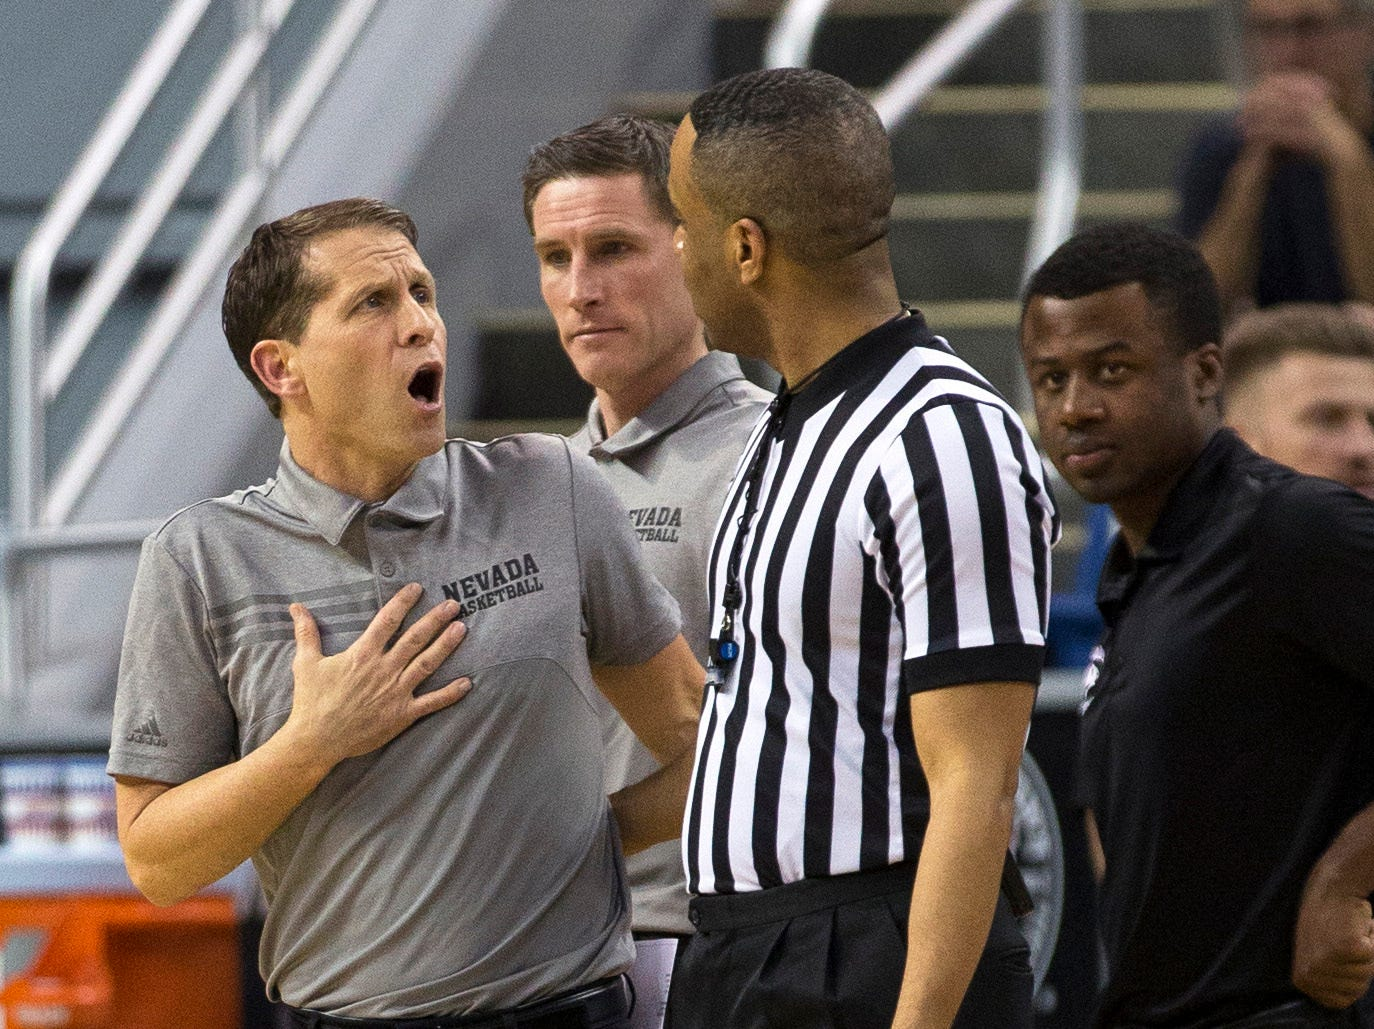 Nevada head coach Eric Musselman reacts after a foul is called in the first half an NCAA college basketball game against San Jose State in Reno, Nev., Wednesday, Jan. 9, 2019. (AP Photo/Tom R. Smedes)